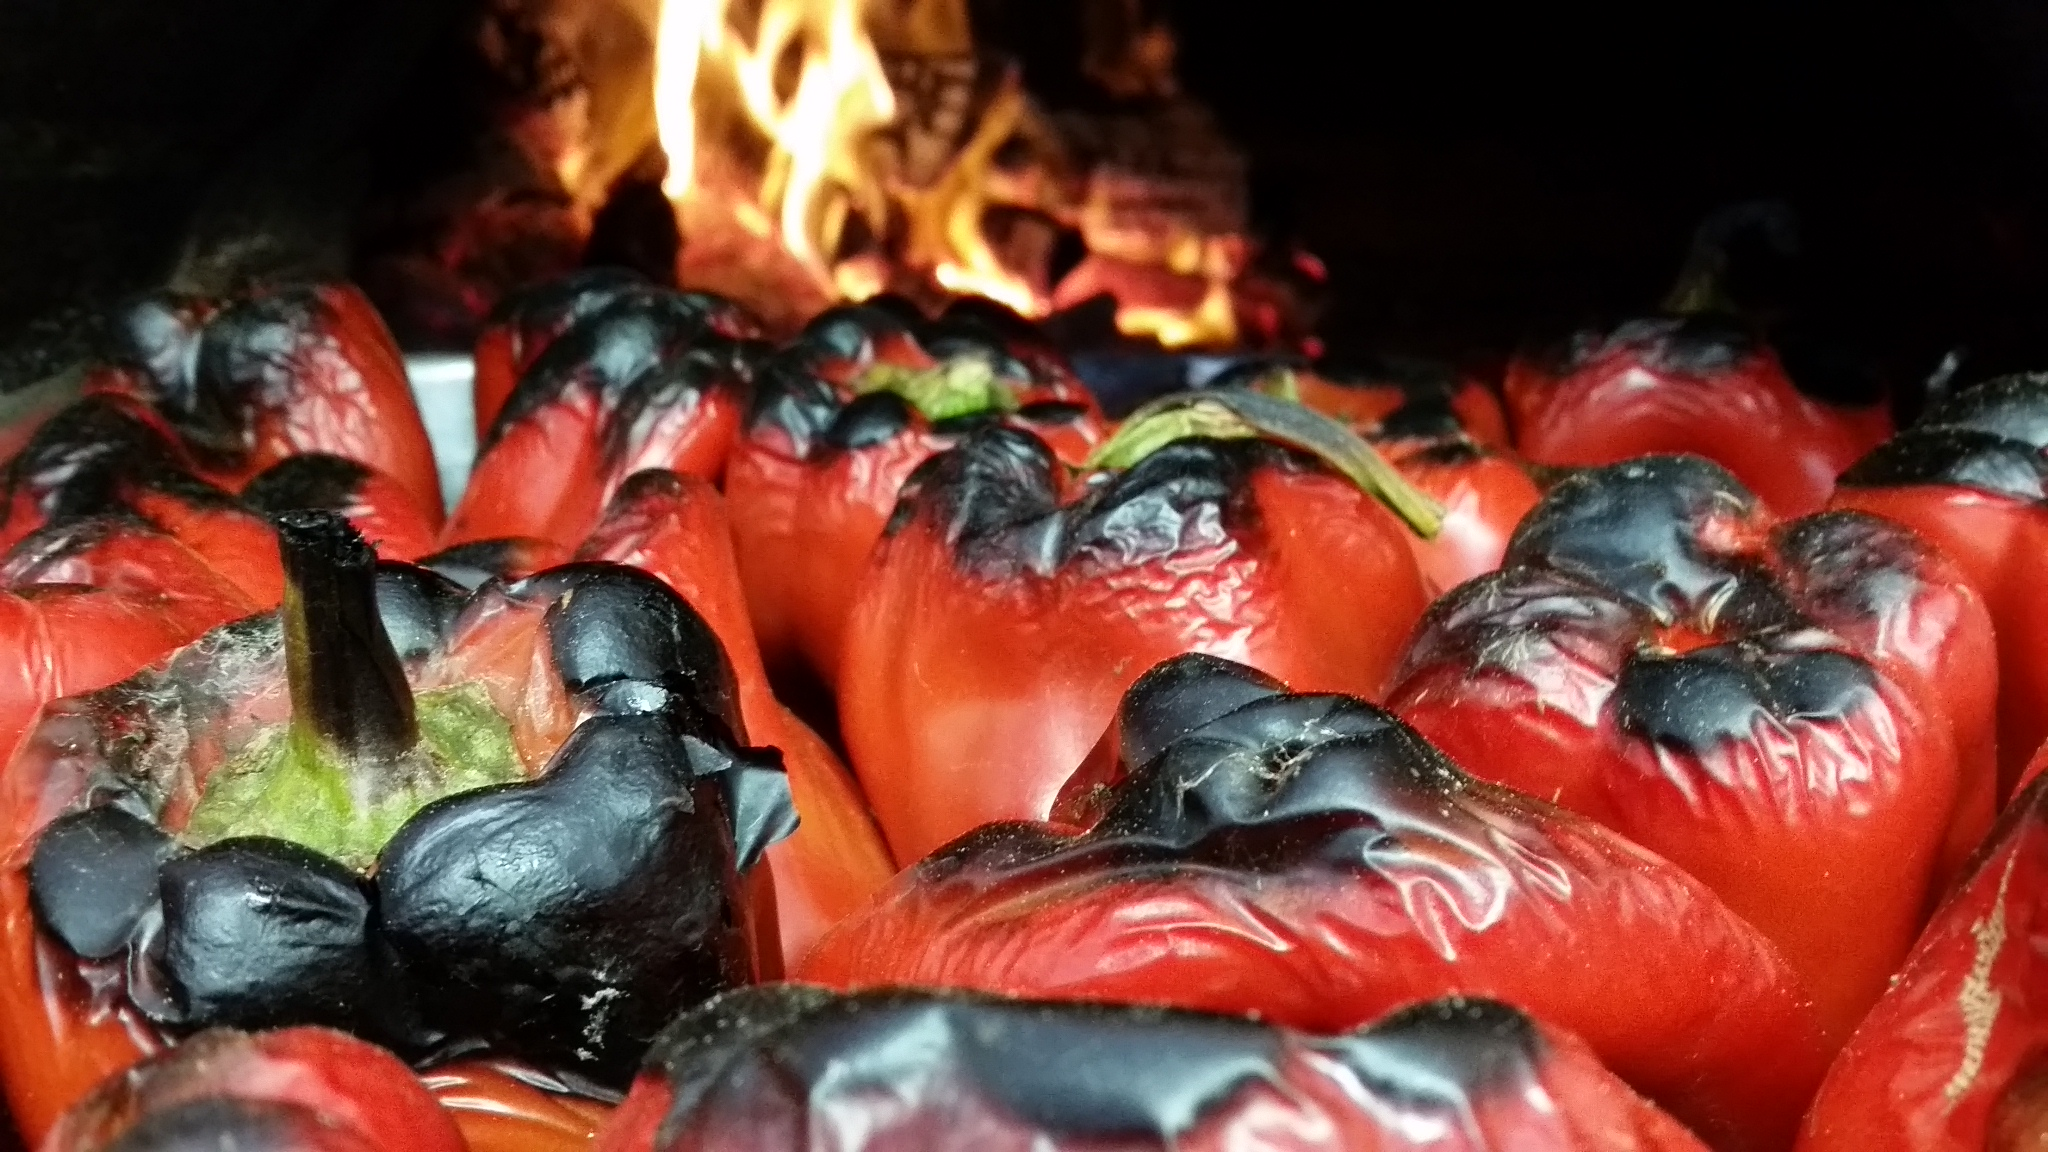 House roasted capsicums!